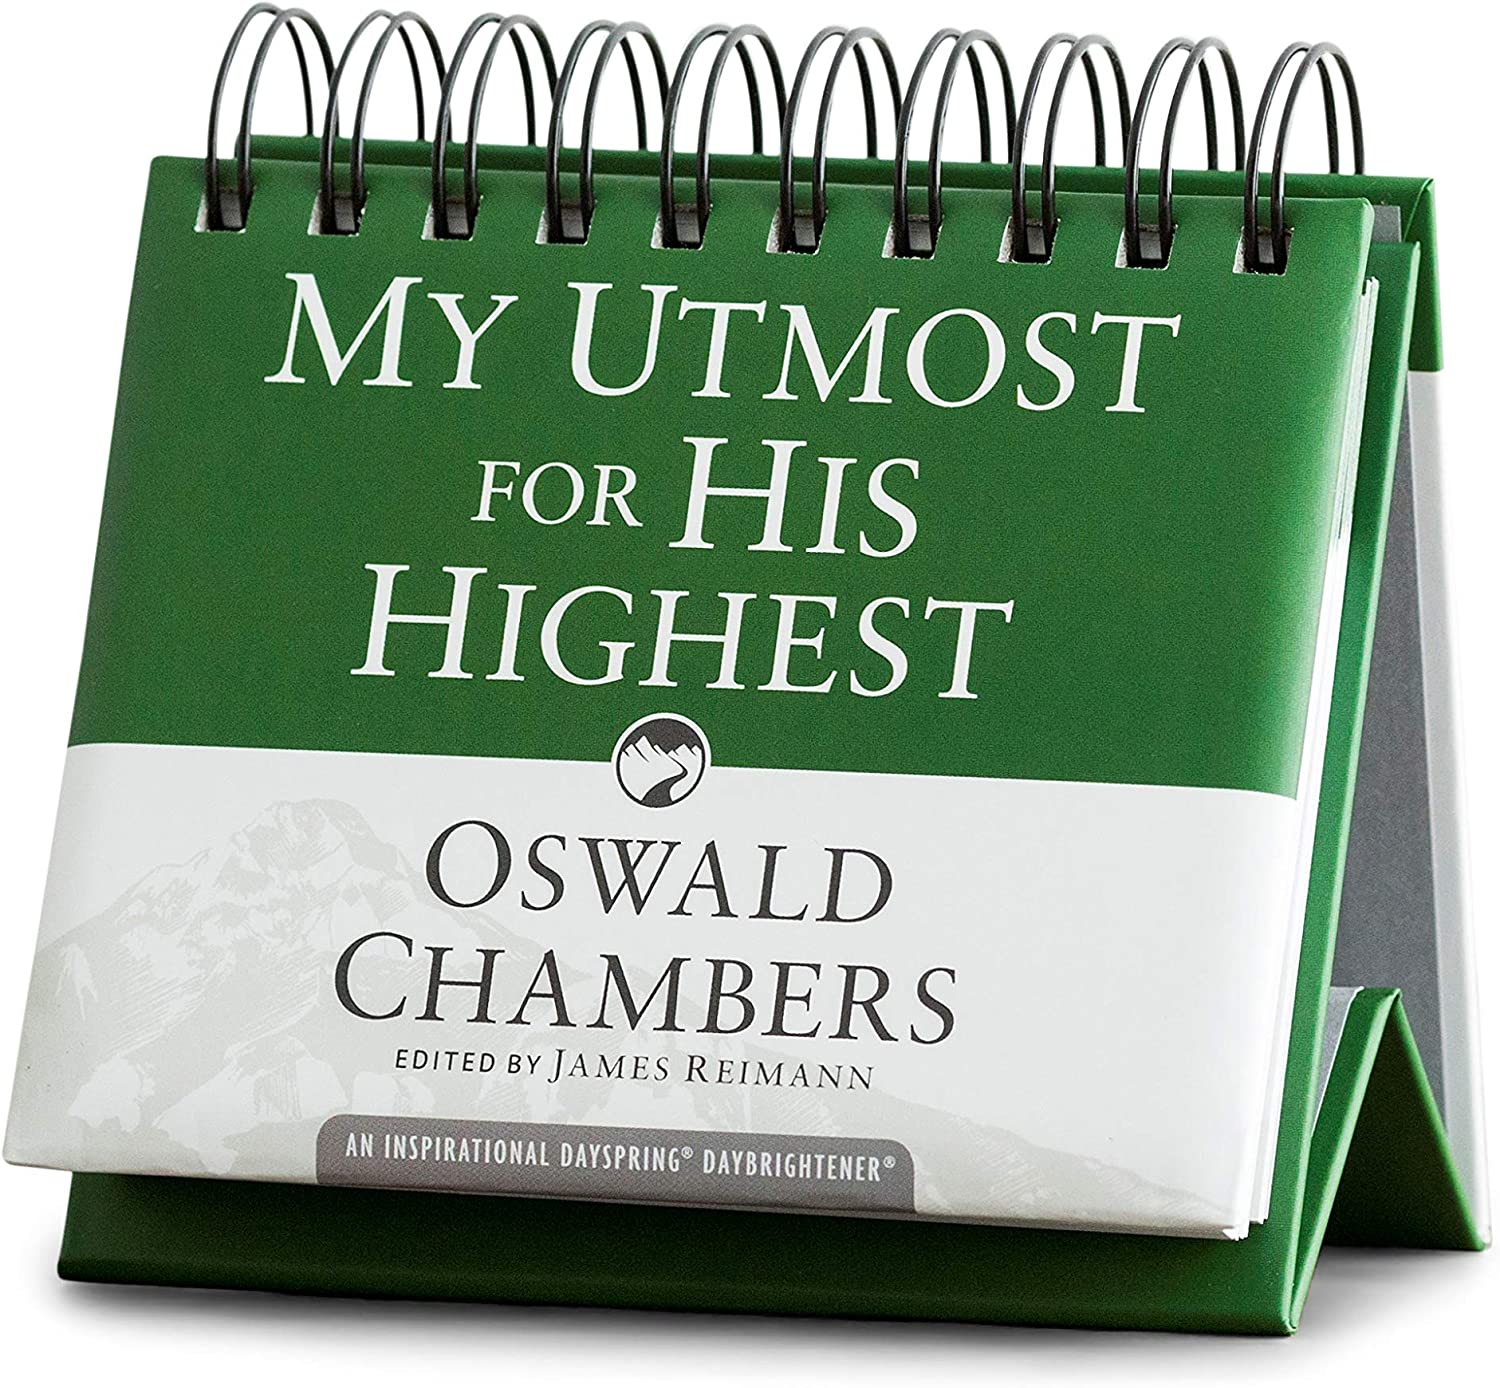 DaySpring - Oswald Chambers - My Utmost for His Highest - Perpetual Calendar (10179), Green